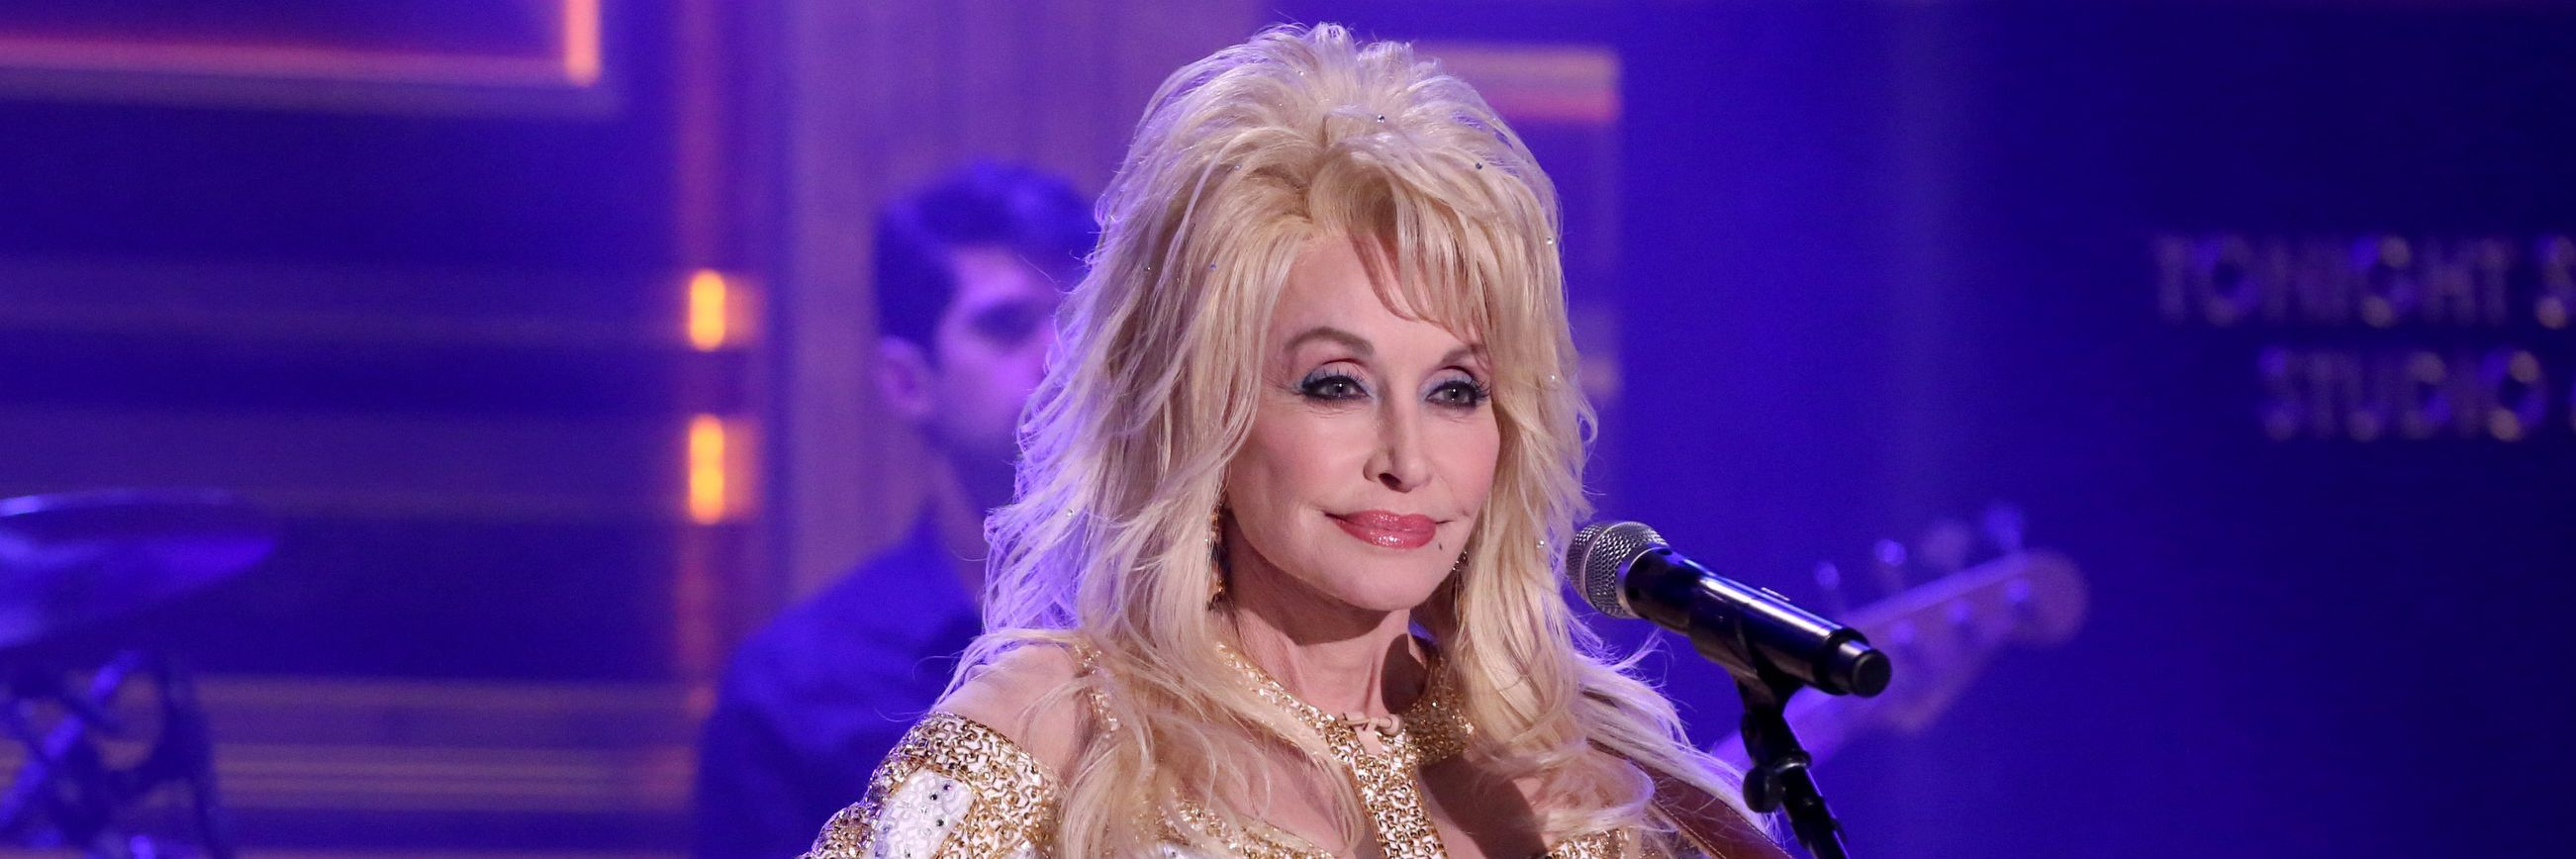 Image result for Rhonda and Alison featured on Dolly Parton soundtrack